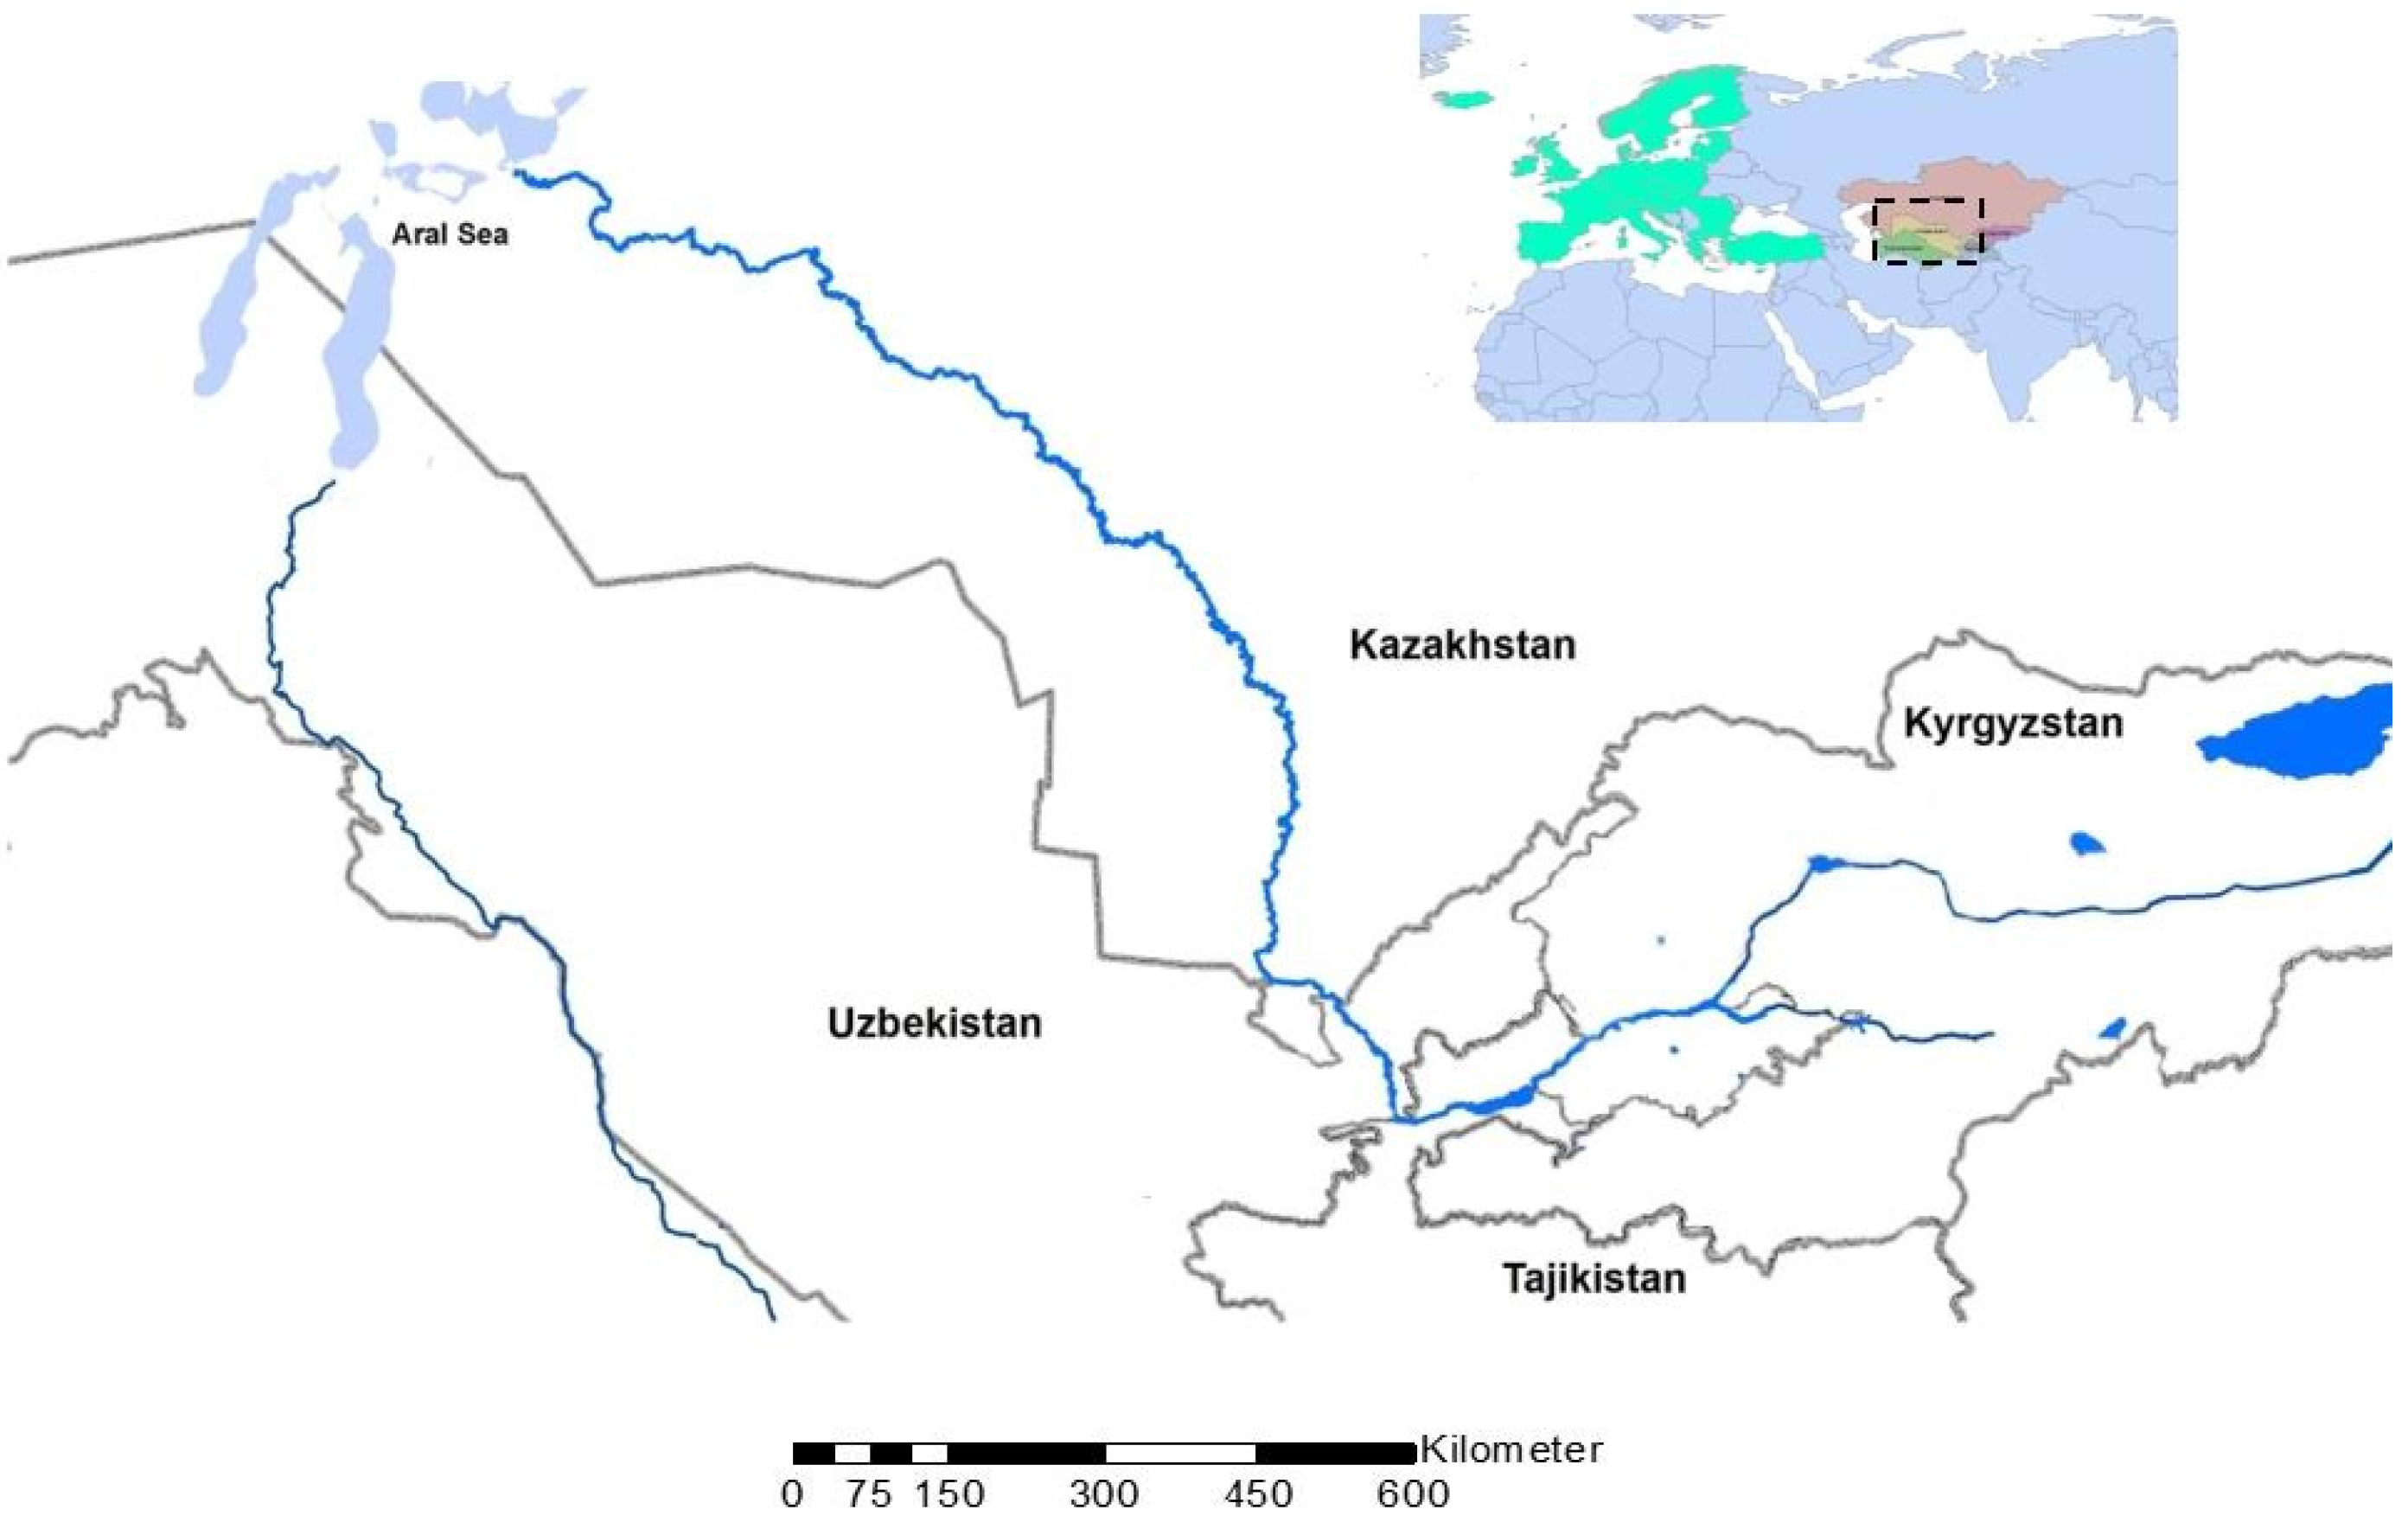 Water | Free Full-Text | Water Security in the Syr Darya